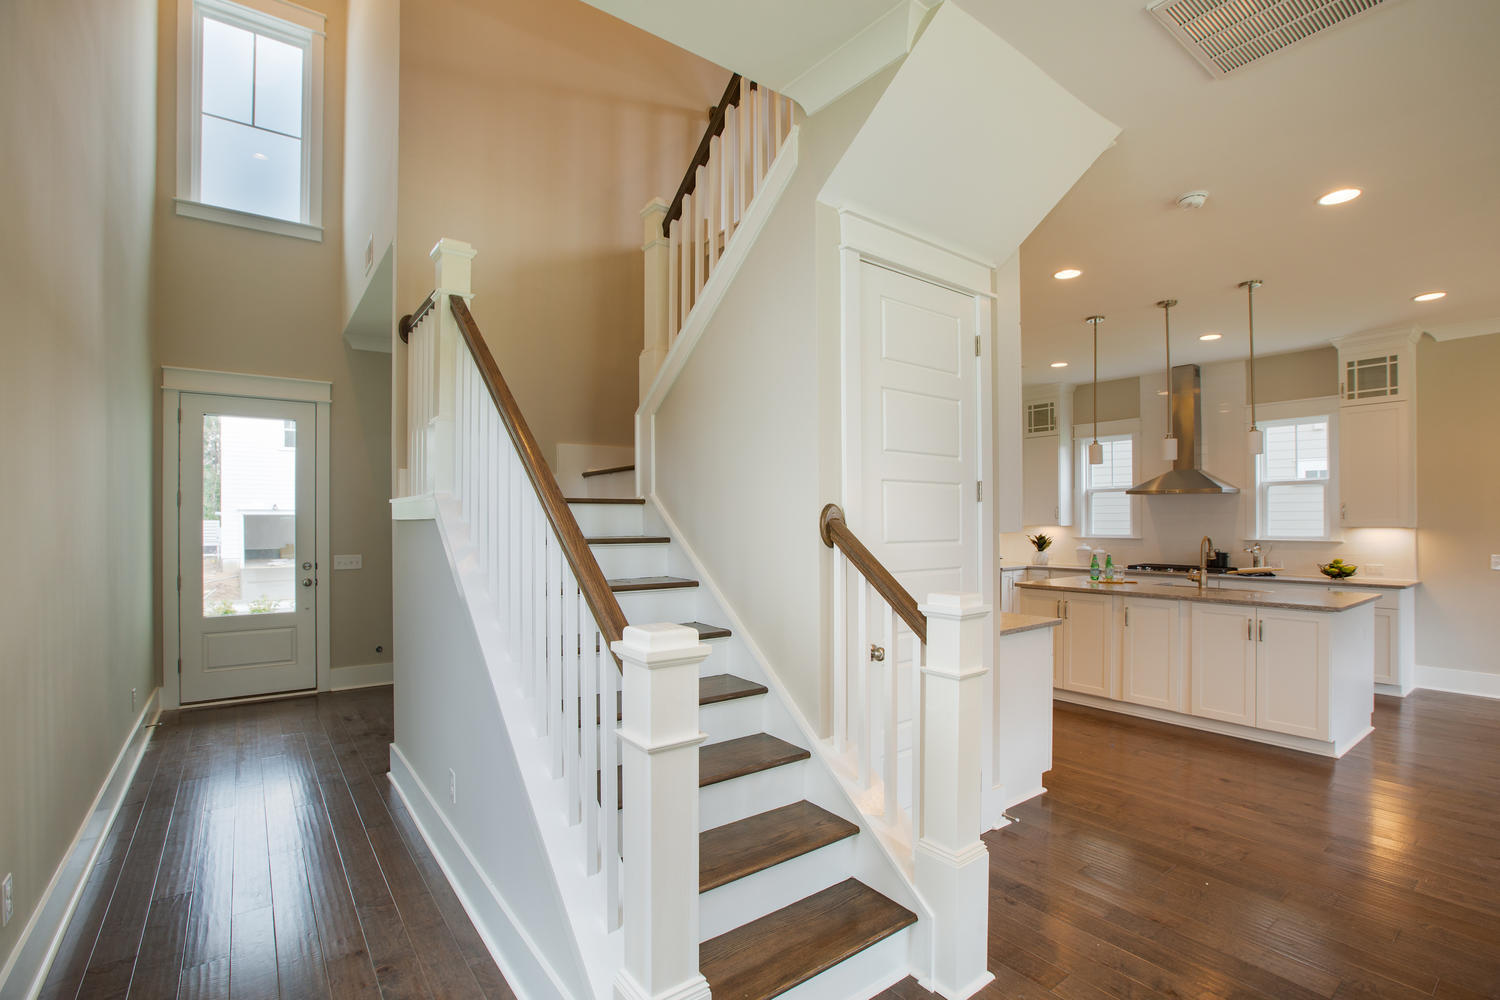 Dunes West Homes For Sale - 2906 Clearwater, Mount Pleasant, SC - 4